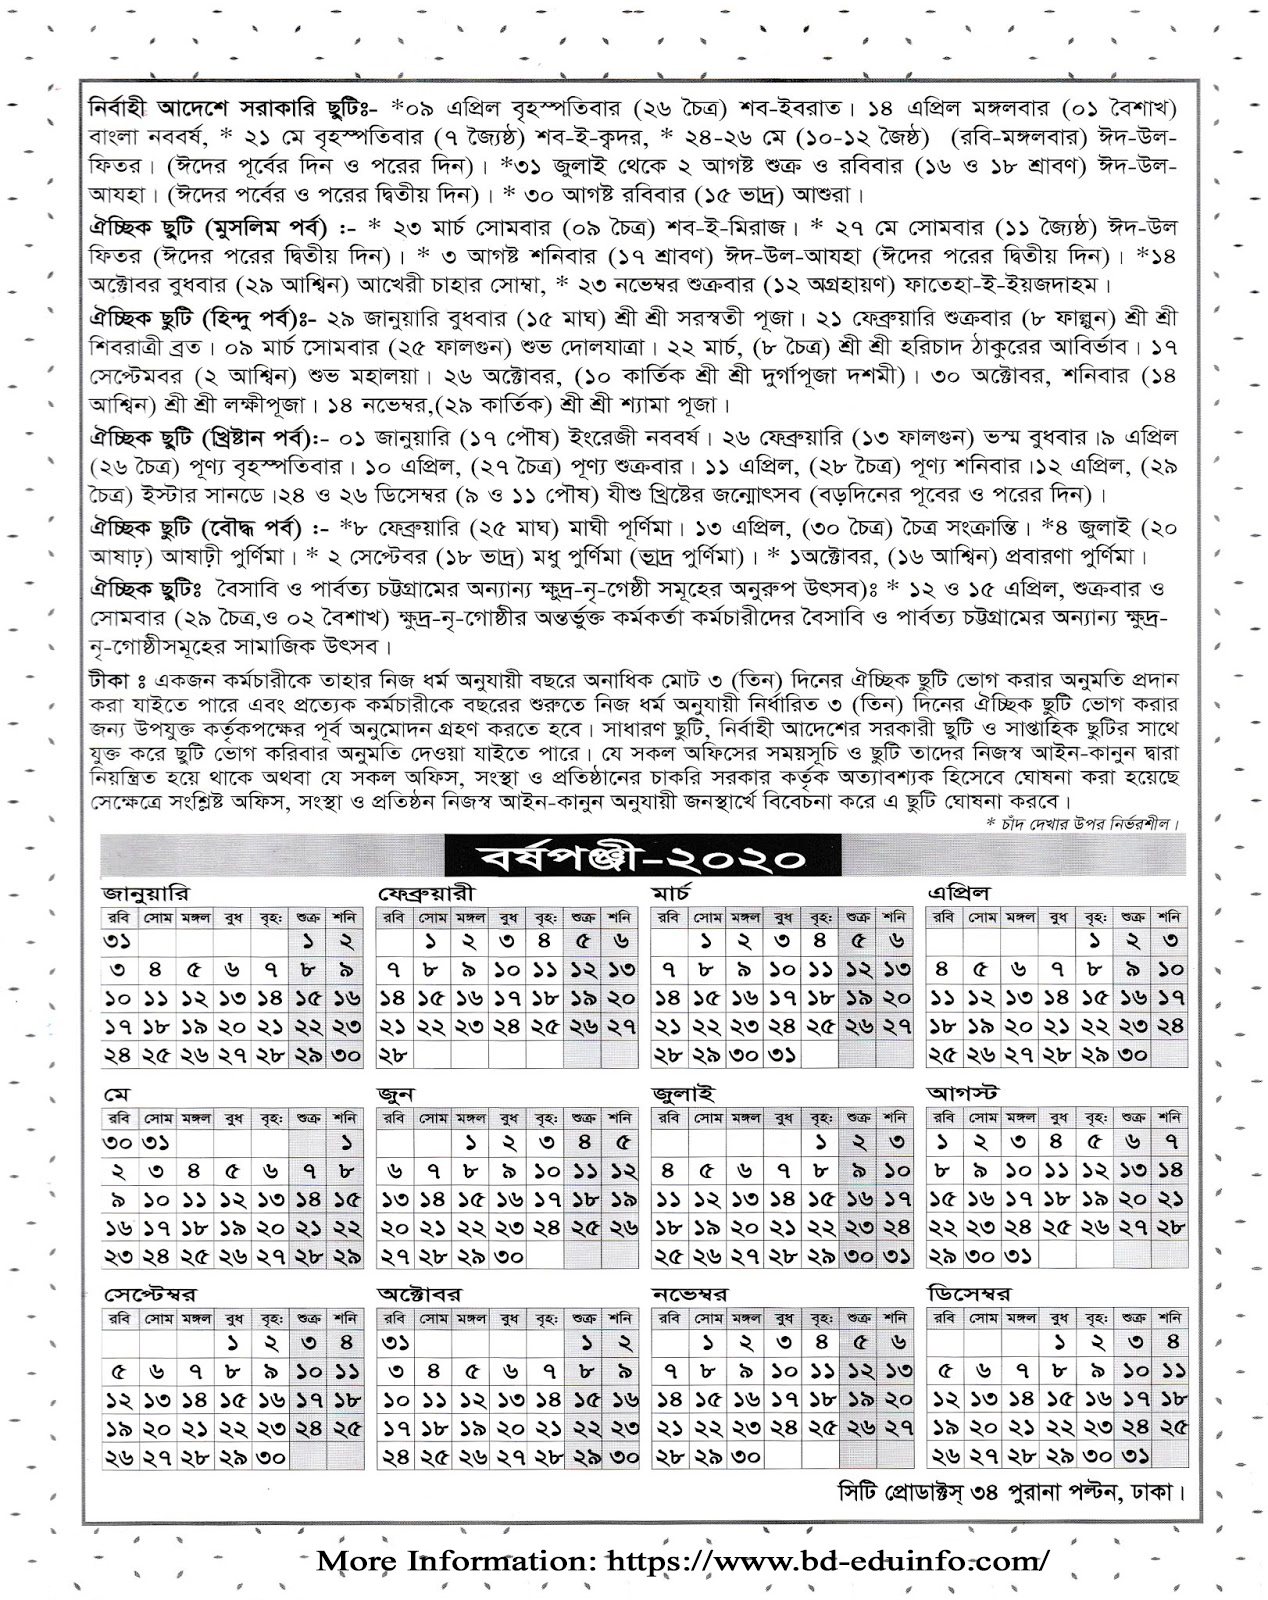 Bangladesh Government and Non-Government Primary School Holiday 2020: